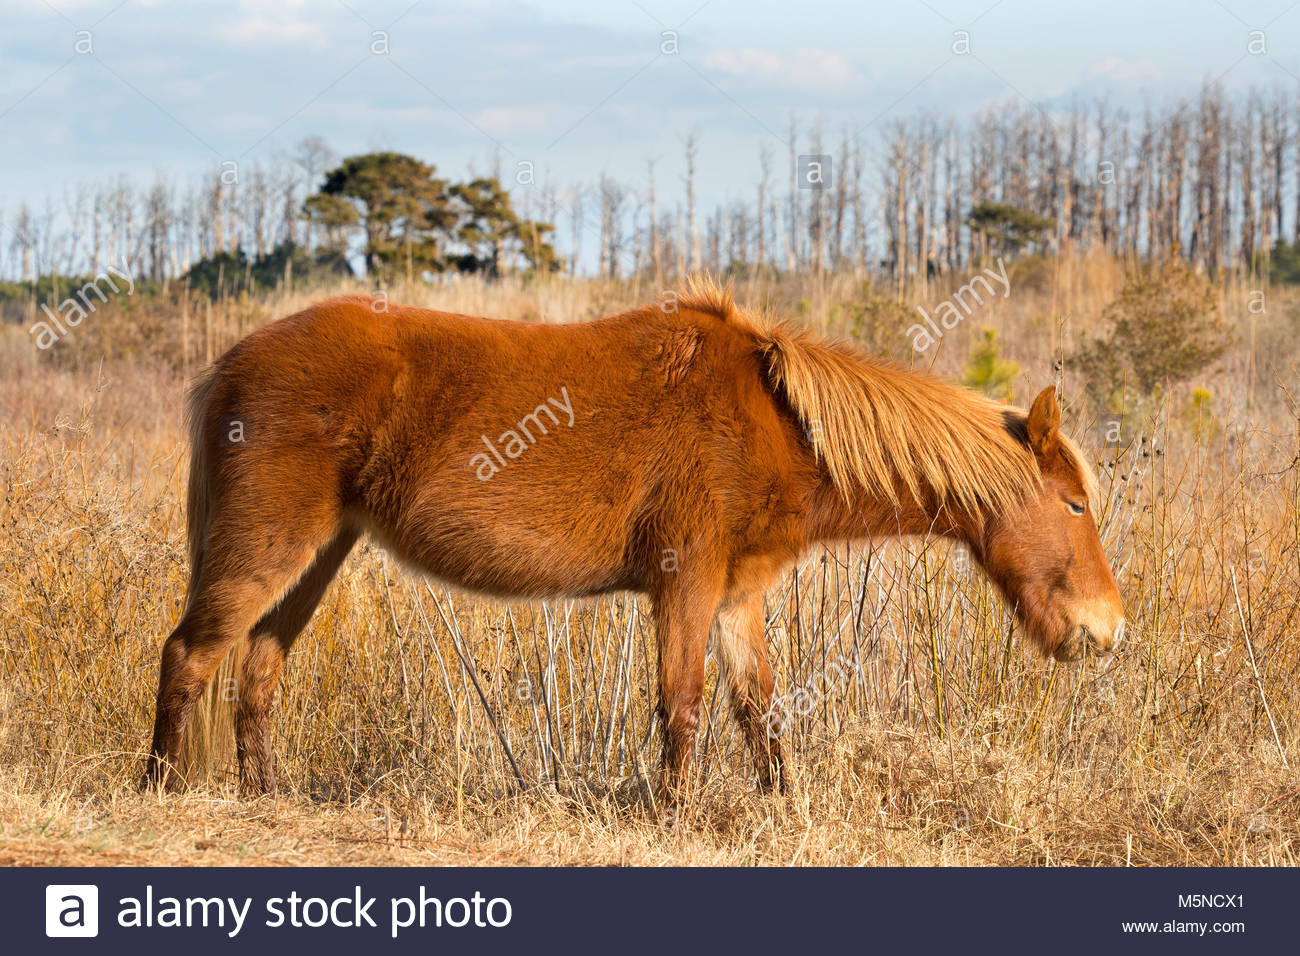 A Chincoteague pony (Equus caballus), also known as an Assateague horse, grazes in a marsh on Assateague Island - Stock Image